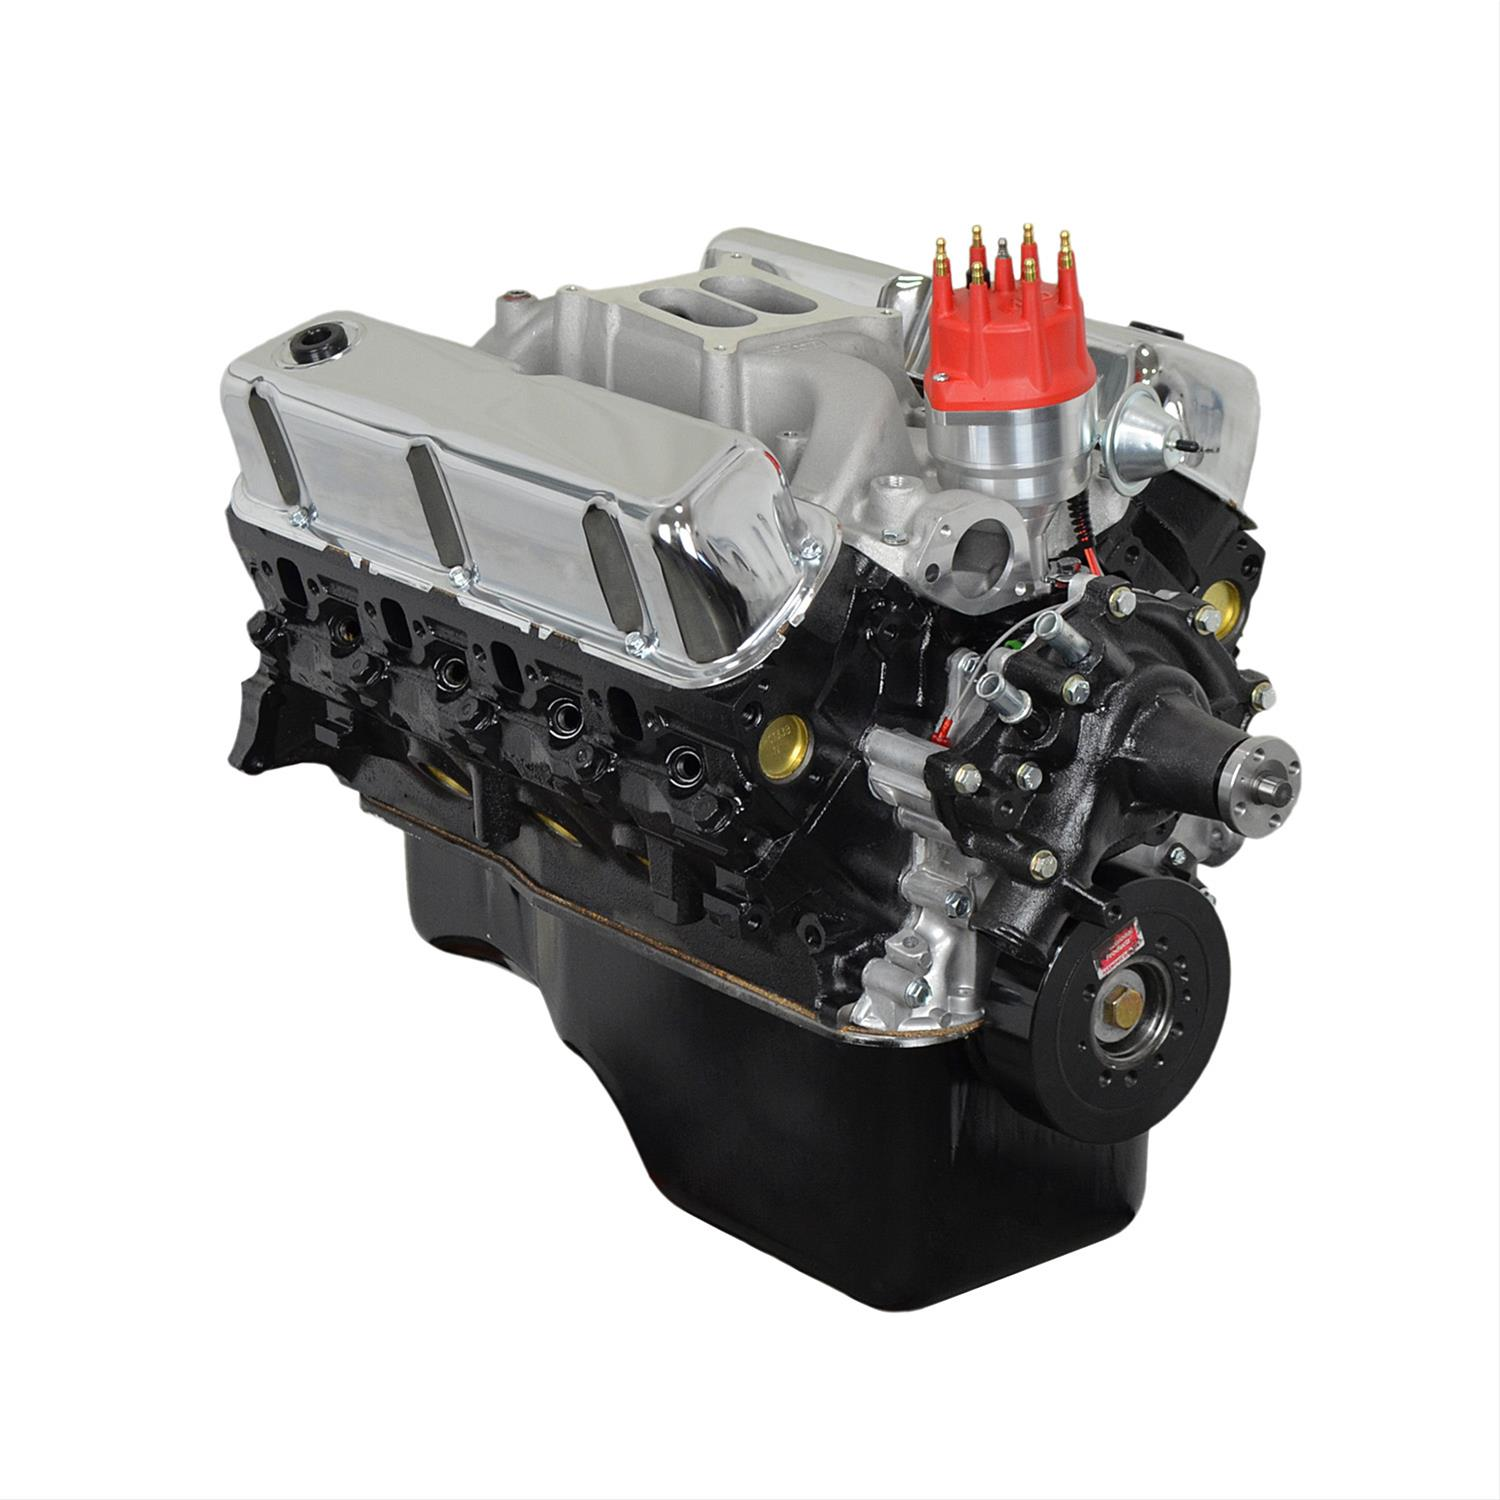 Atk high performance ford 302 300hp stage 2 crate engines